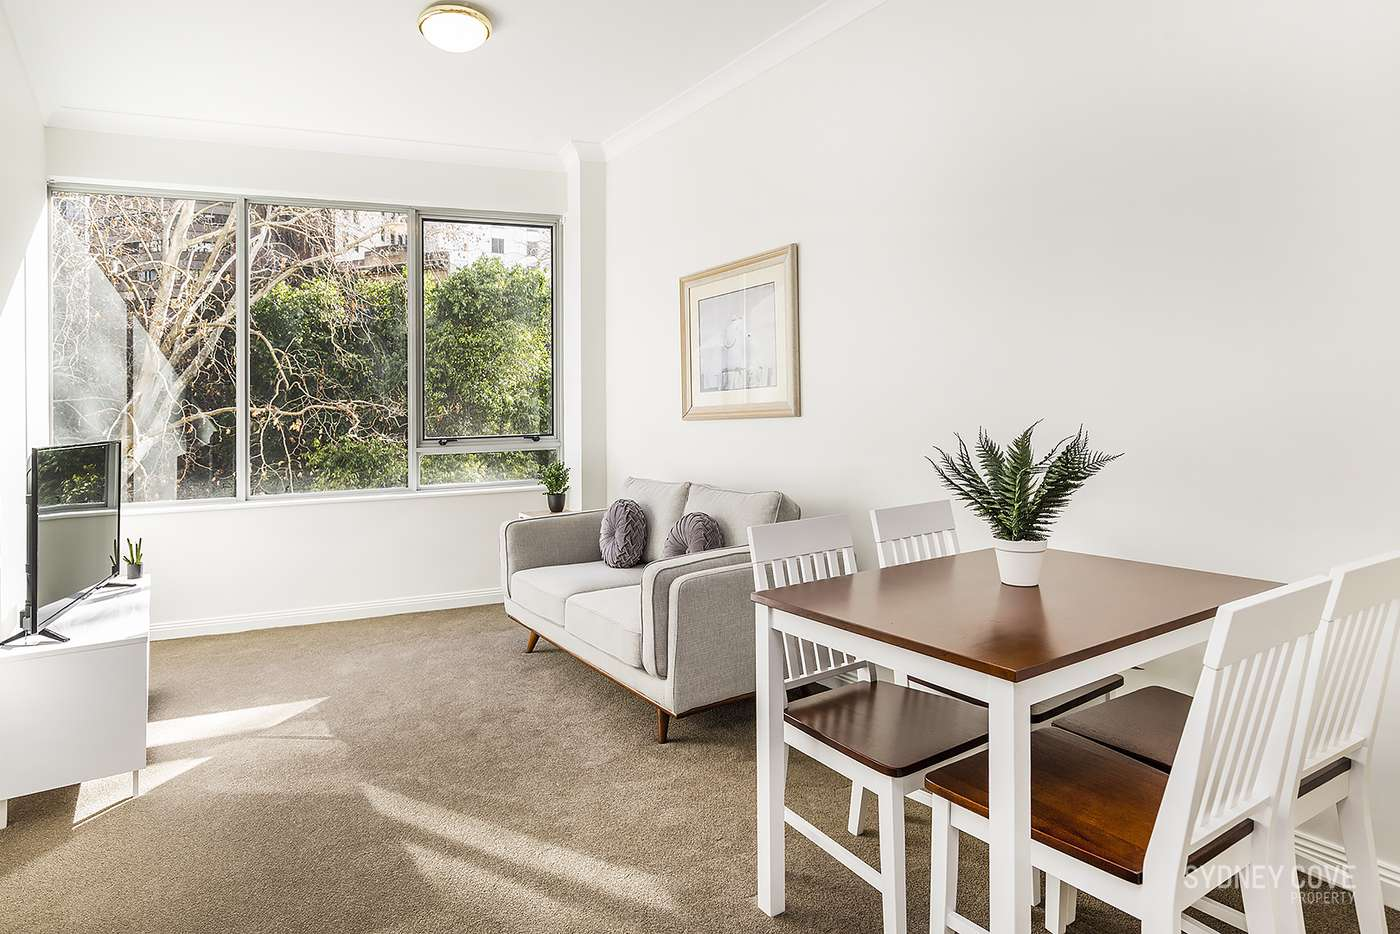 Main view of Homely apartment listing, 38 Bridge Street, Sydney NSW 2000